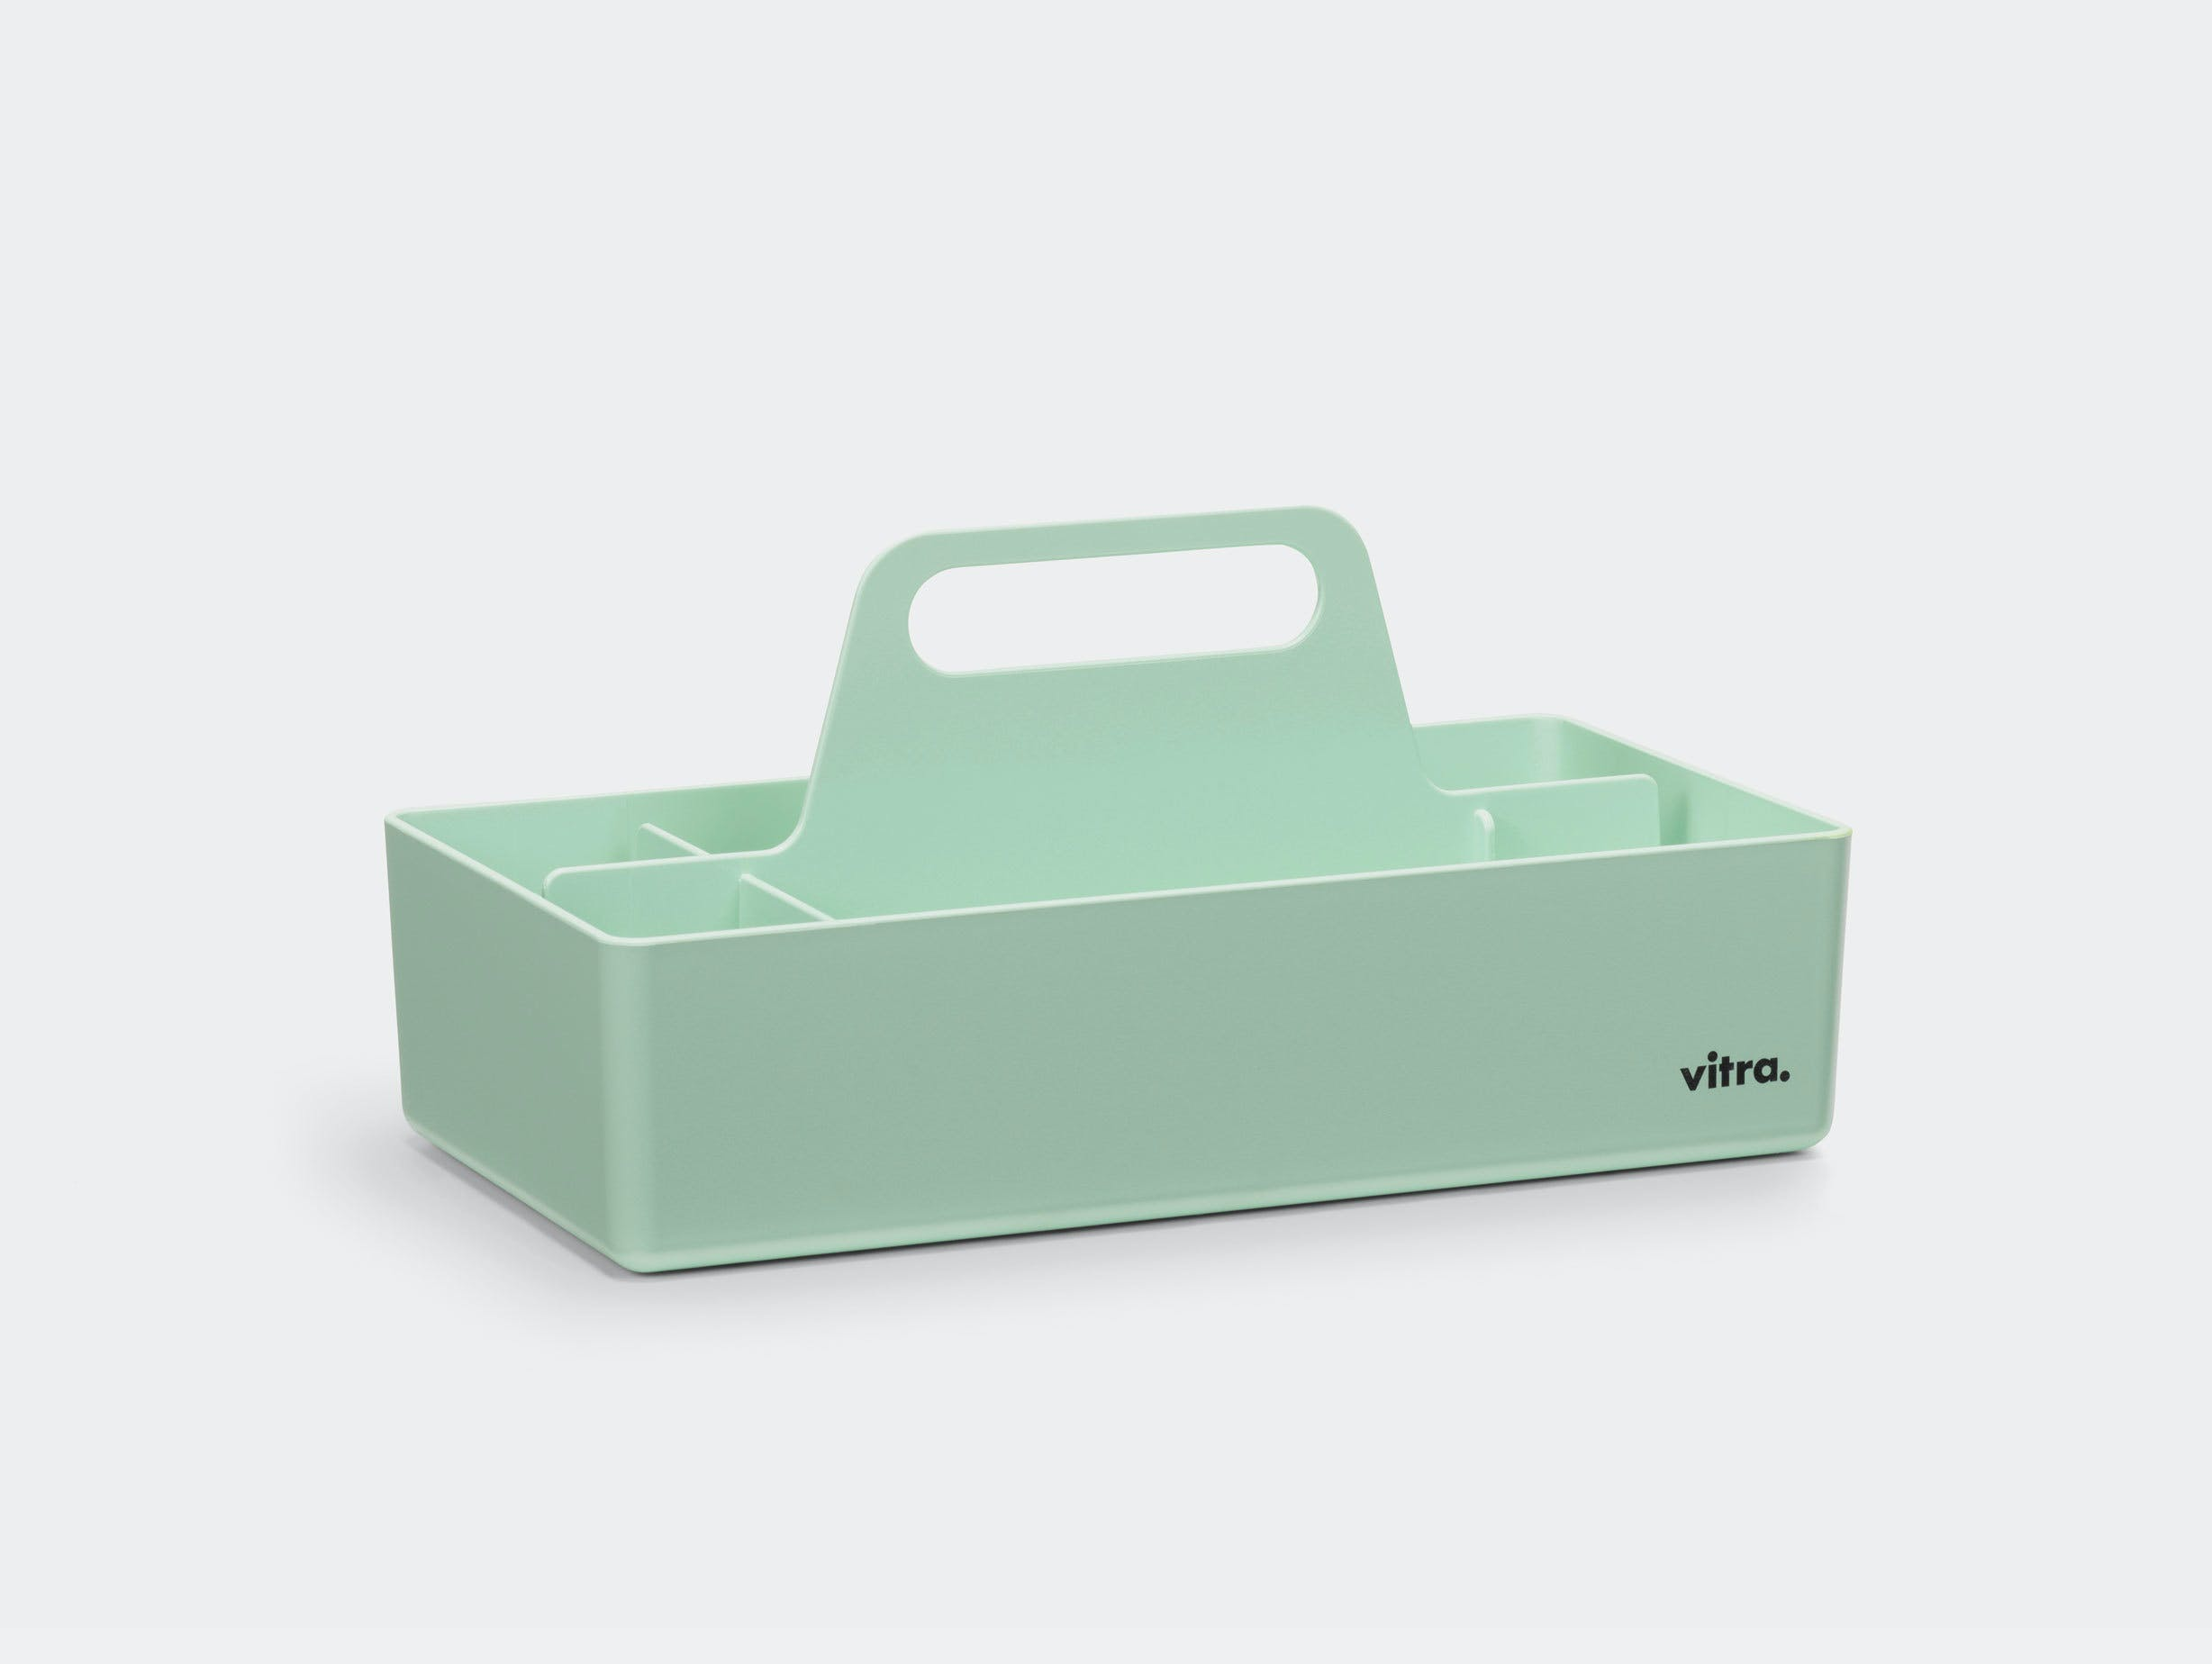 Vitra Toolbox Mint Green Arik Levy